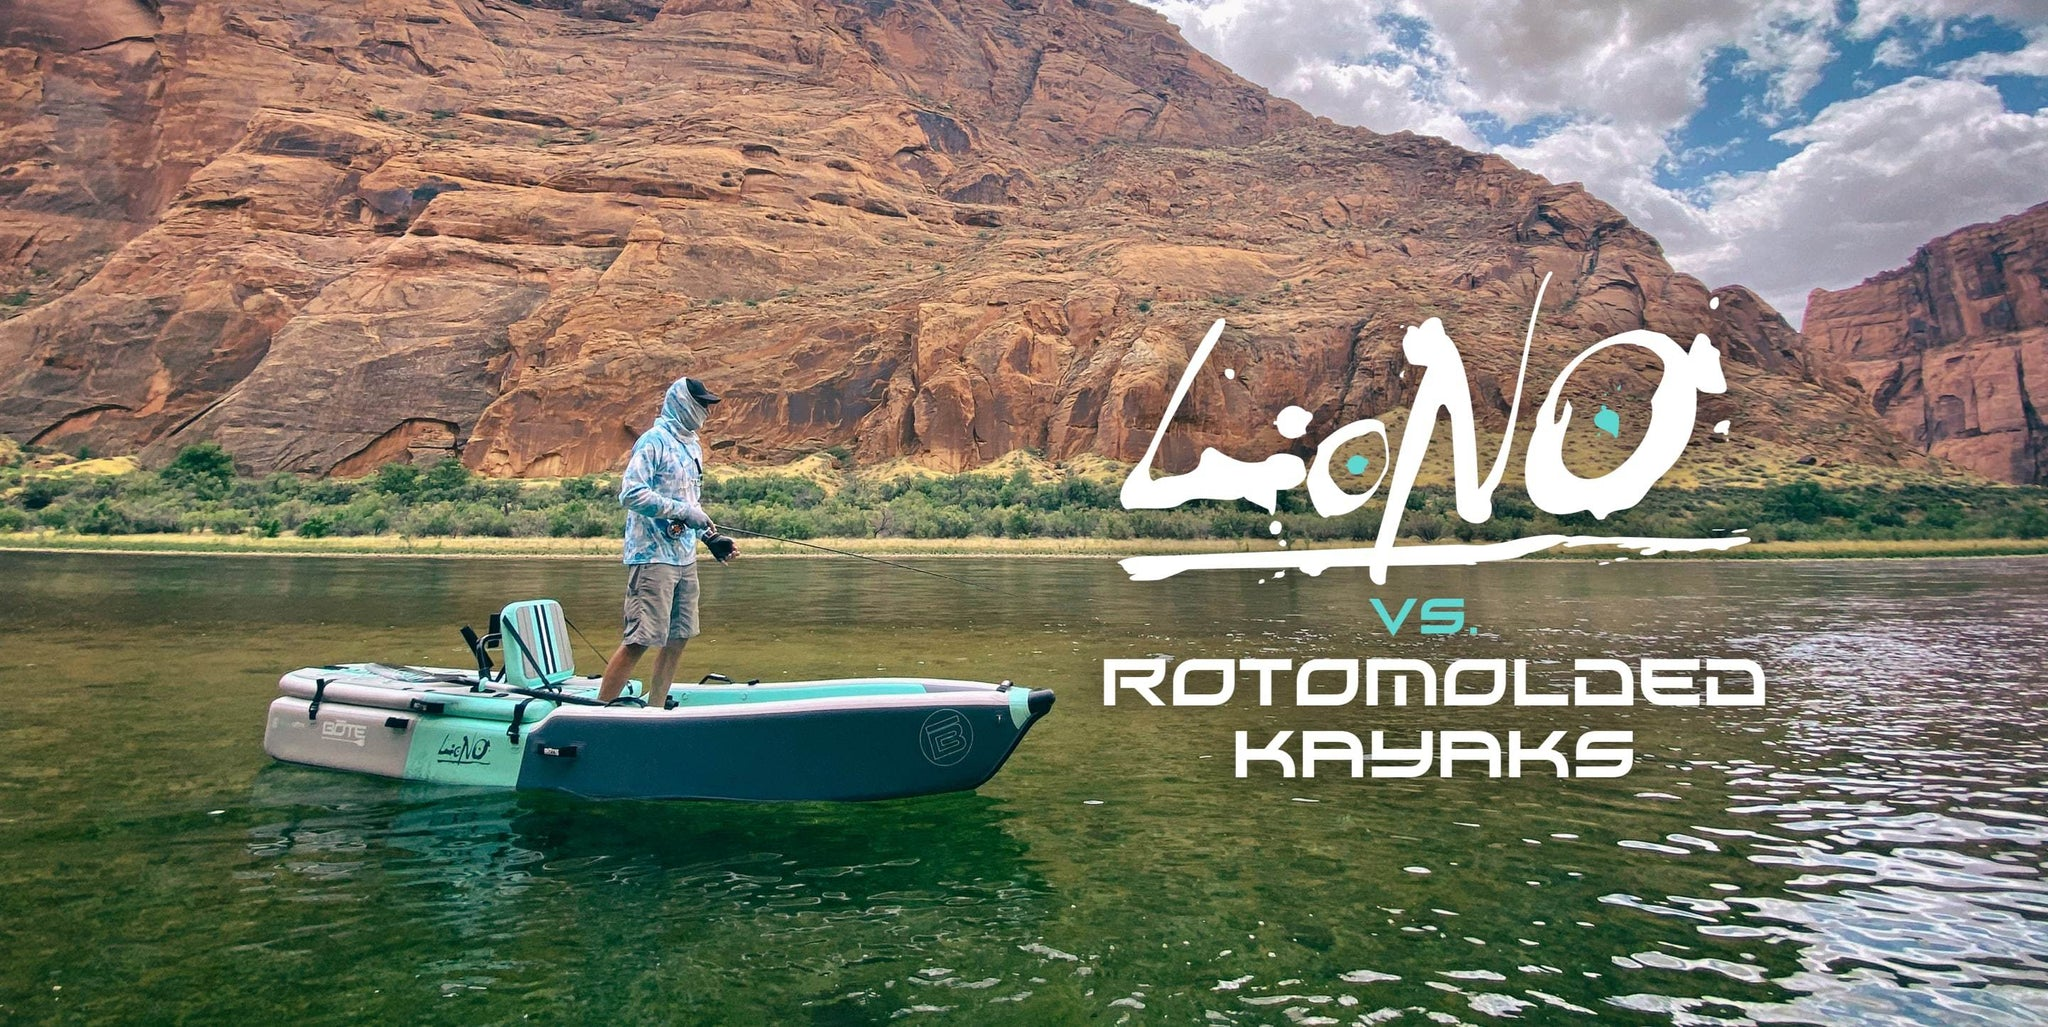 LONO vs Rotomolded Kayak